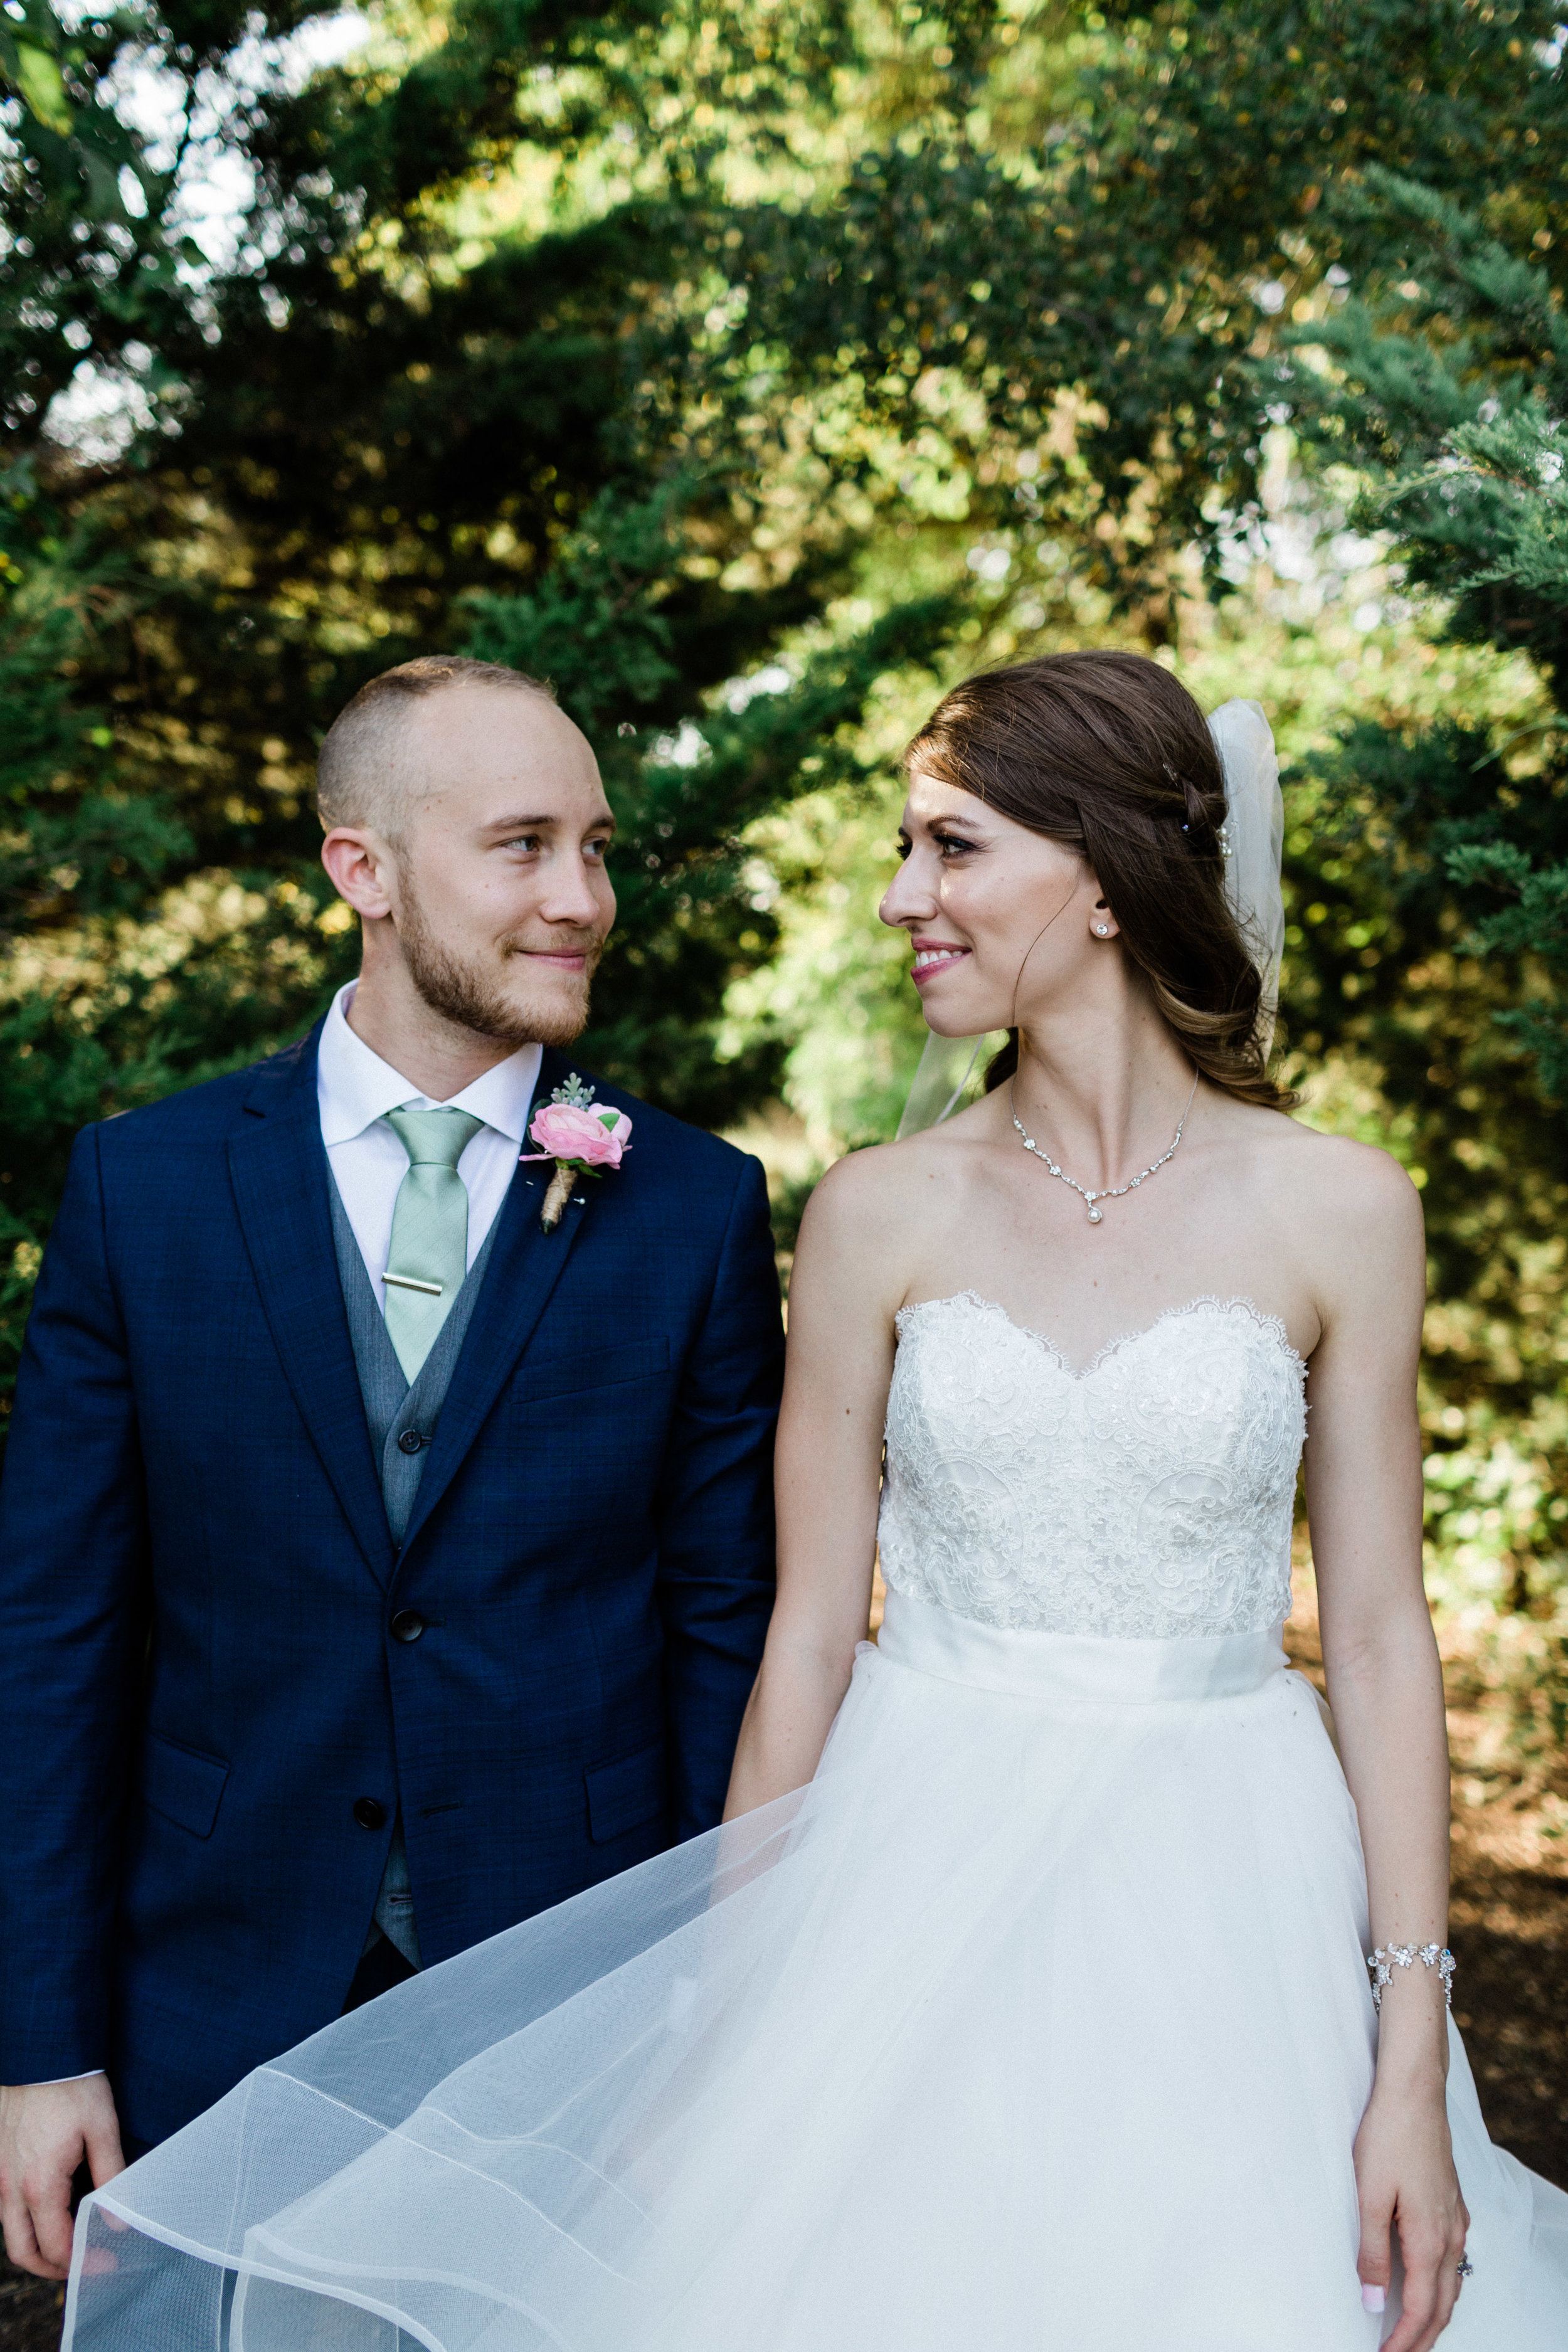 Bride and groom portraits at Chandler's Gardens wedding